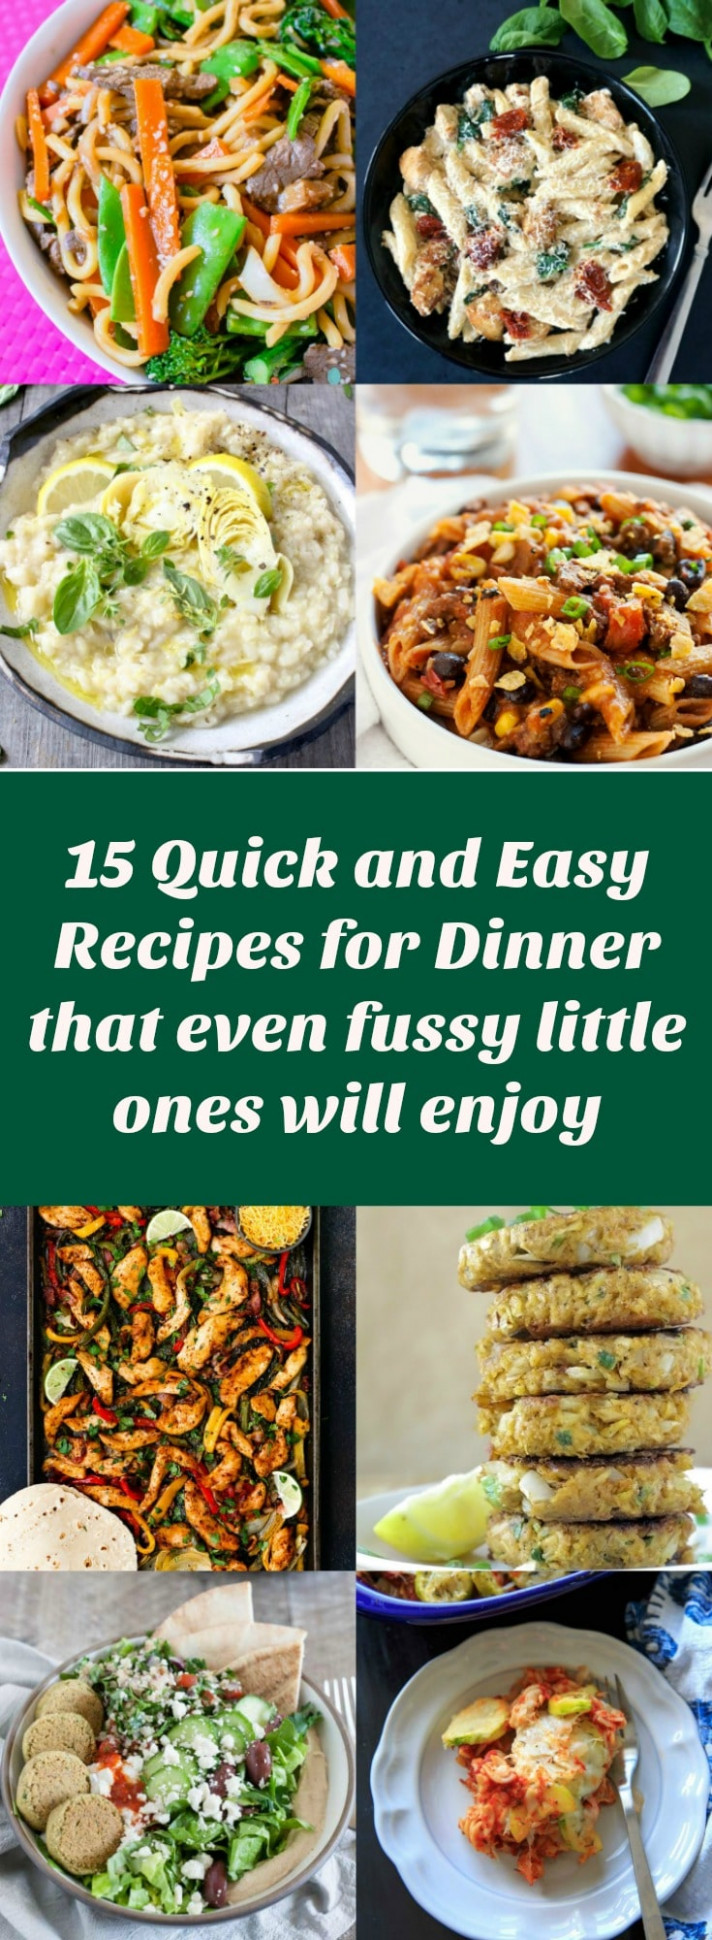 15 Quick and Easy Recipes For Dinner That Even Fussy ...